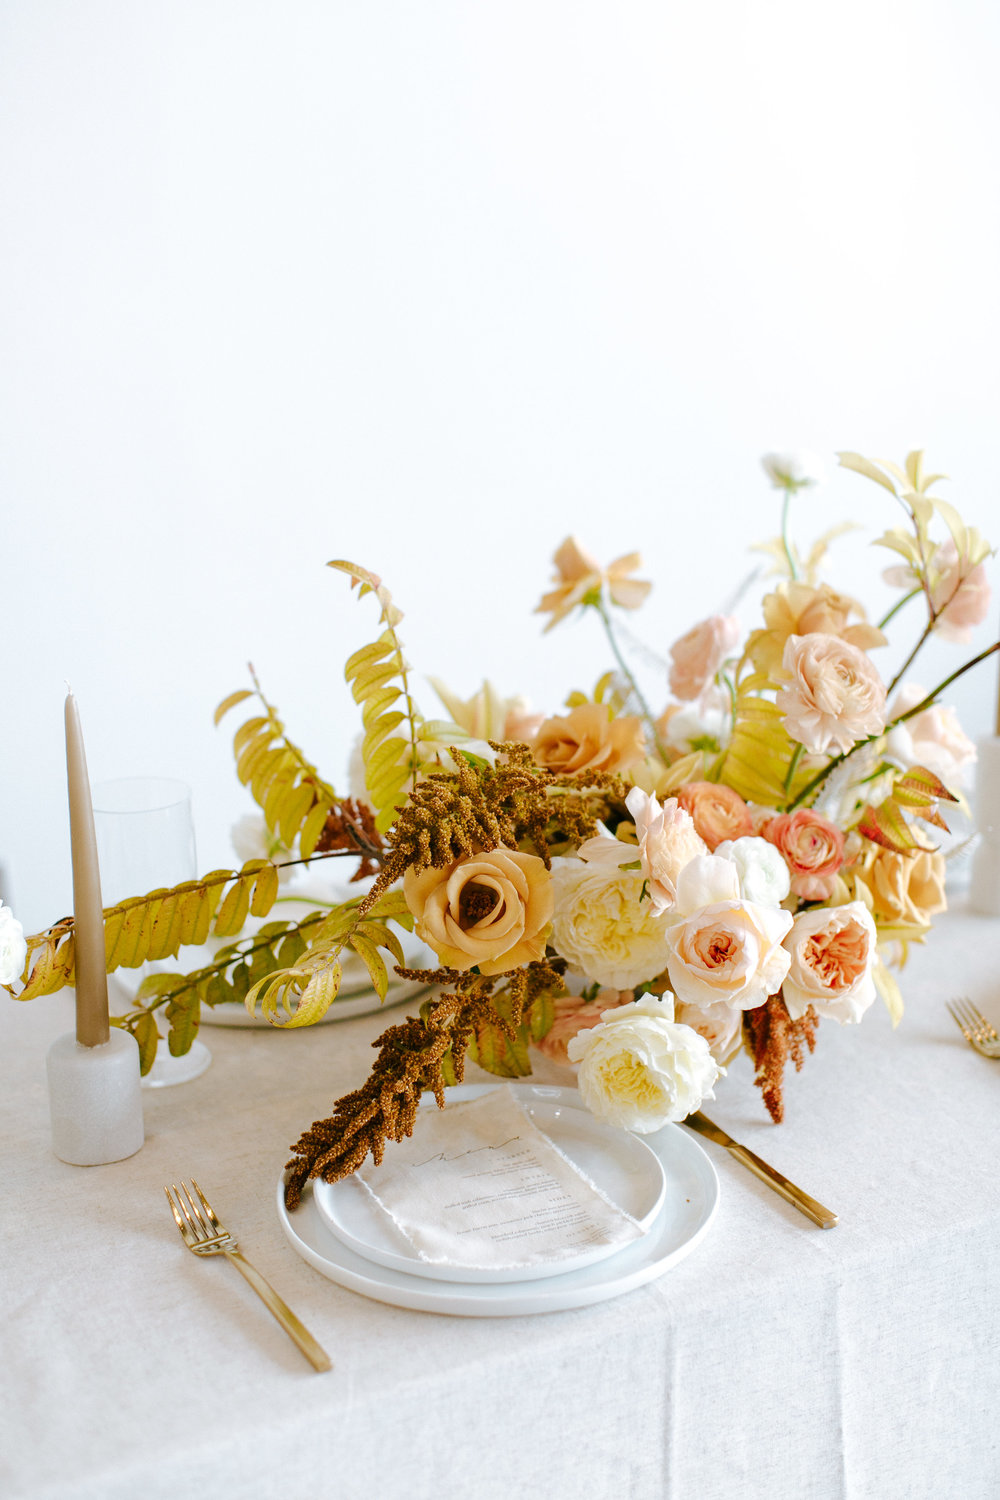 Thanksgivingstyledshoot031.JPG